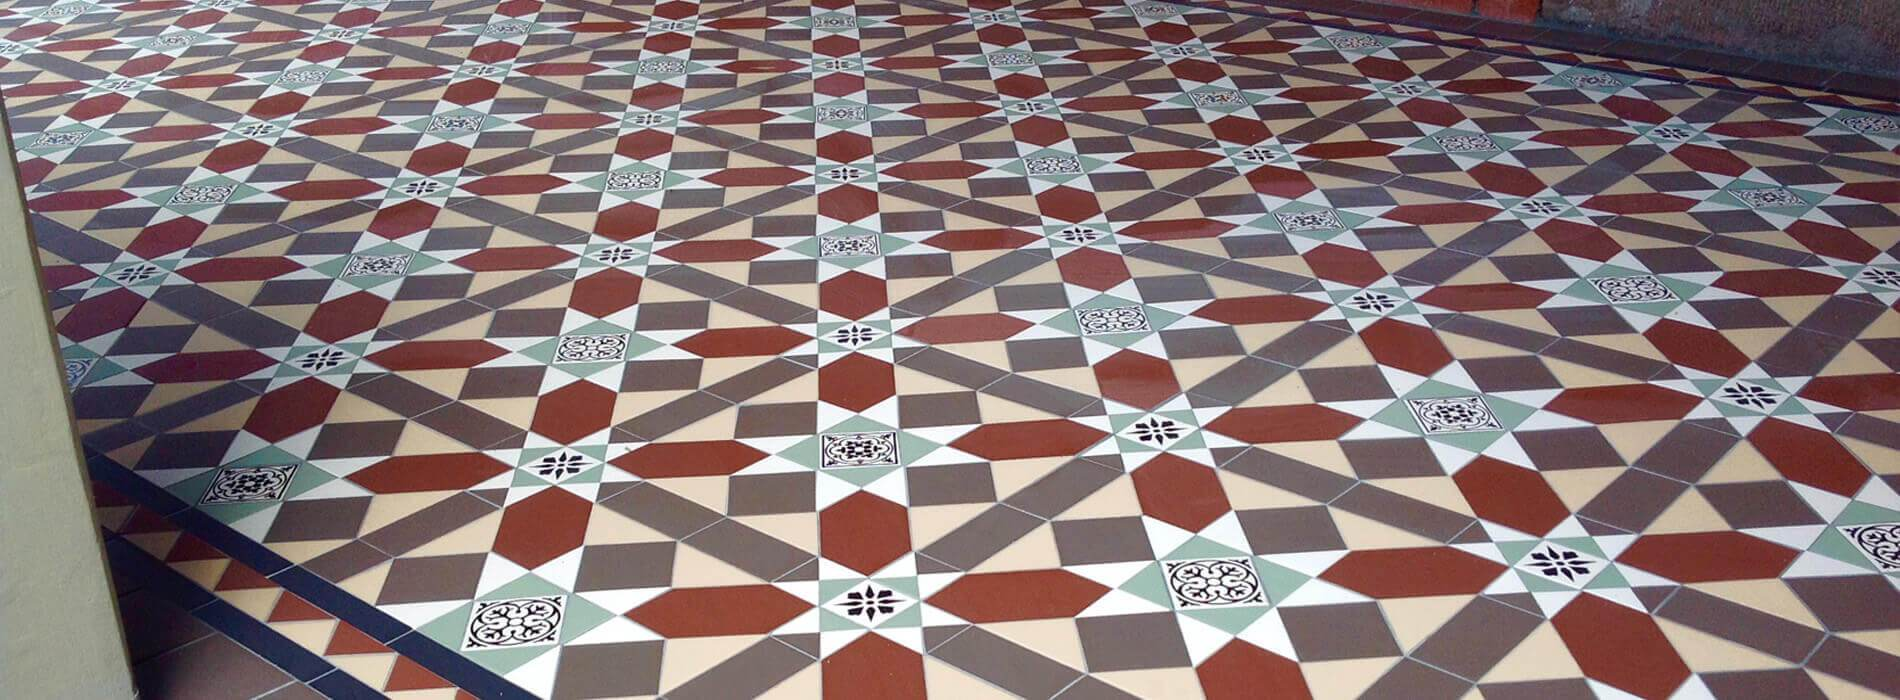 Tessellated Tiling Melbourne Tile Furniture Victorian Mosaic Tiling